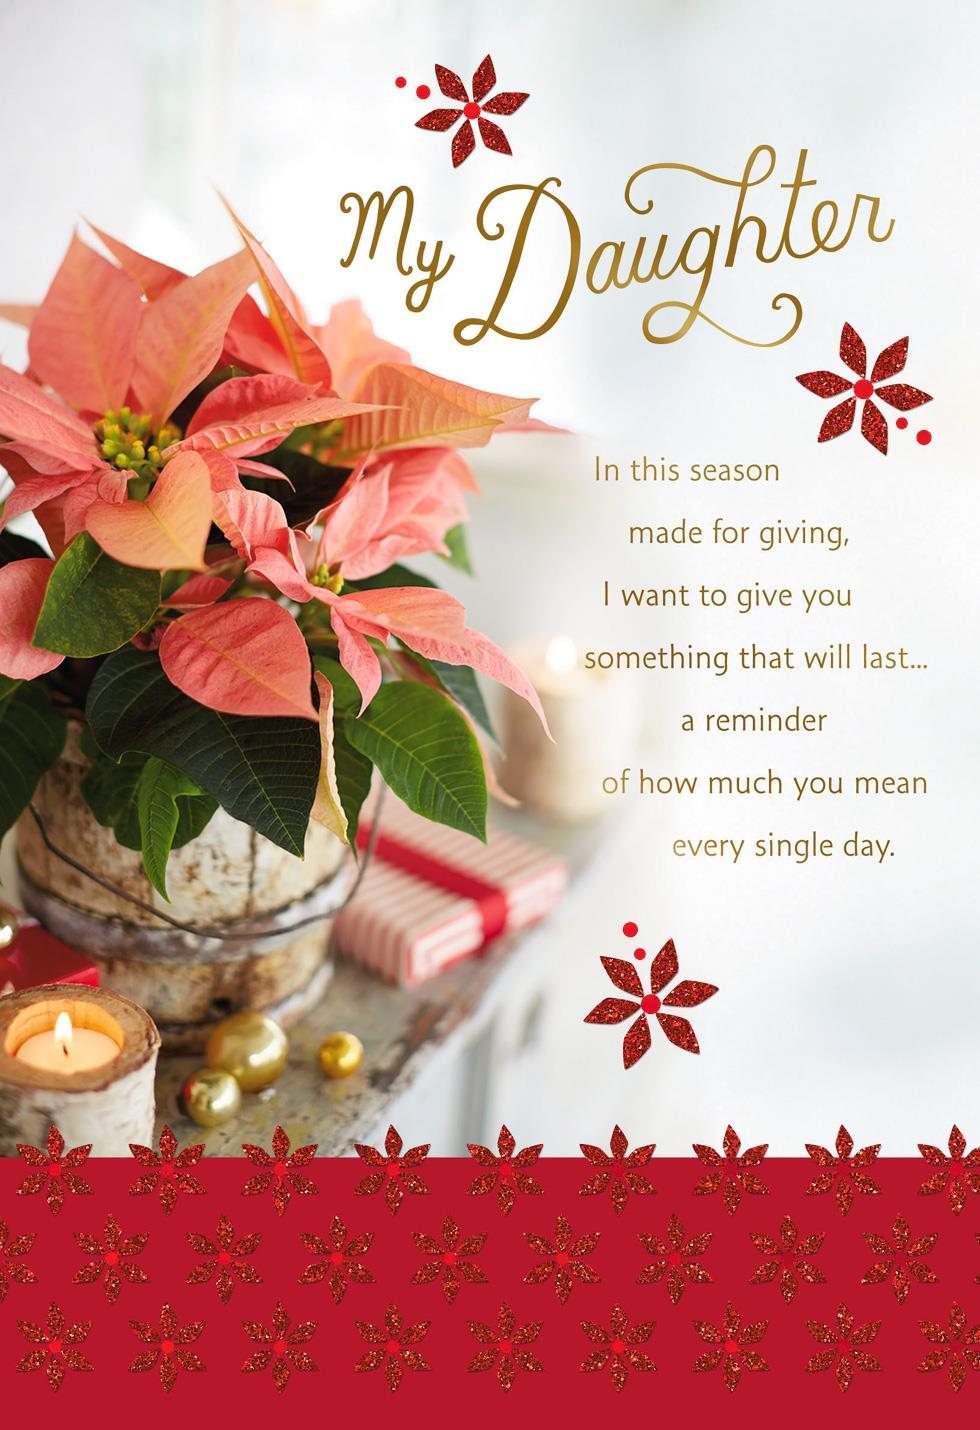 Poinsettia flowers christmas card for daughter greeting Hallmark flowers